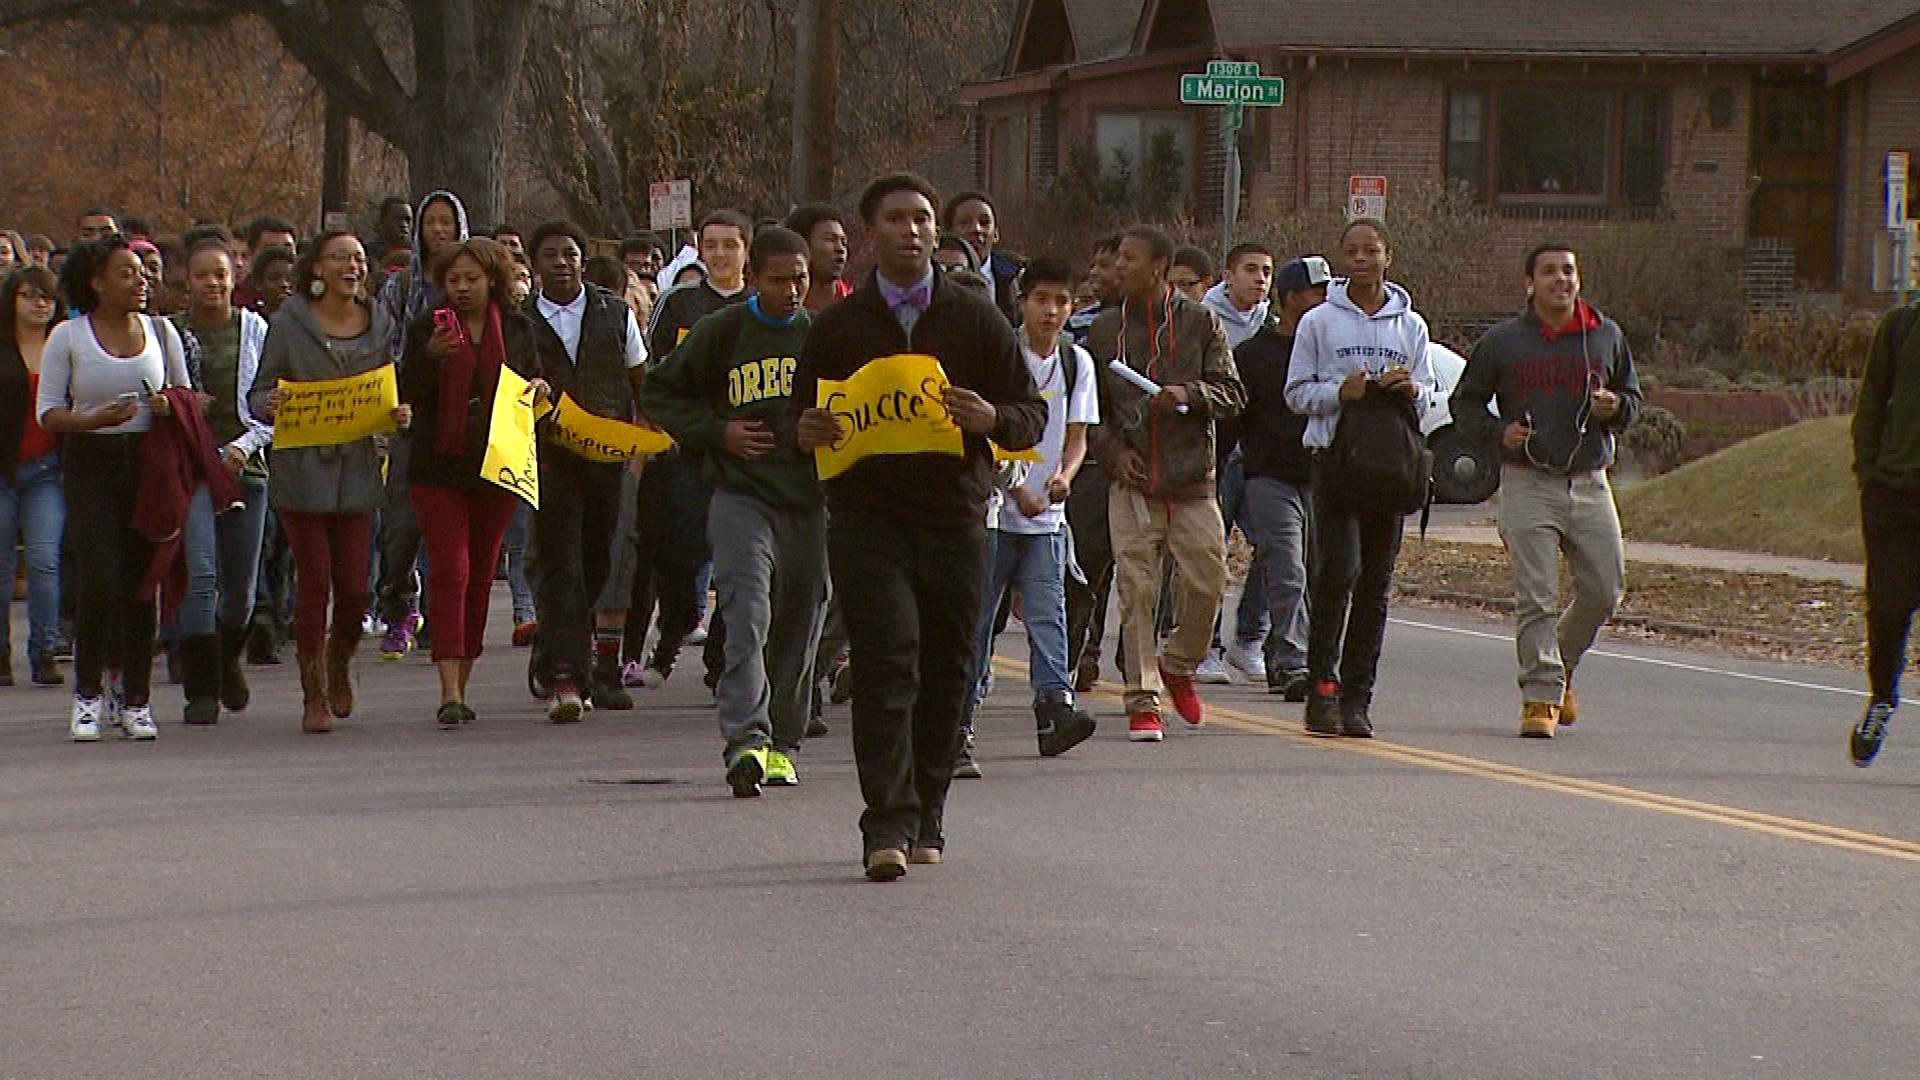 Students during the walkout Monday morning (credit: CBS)